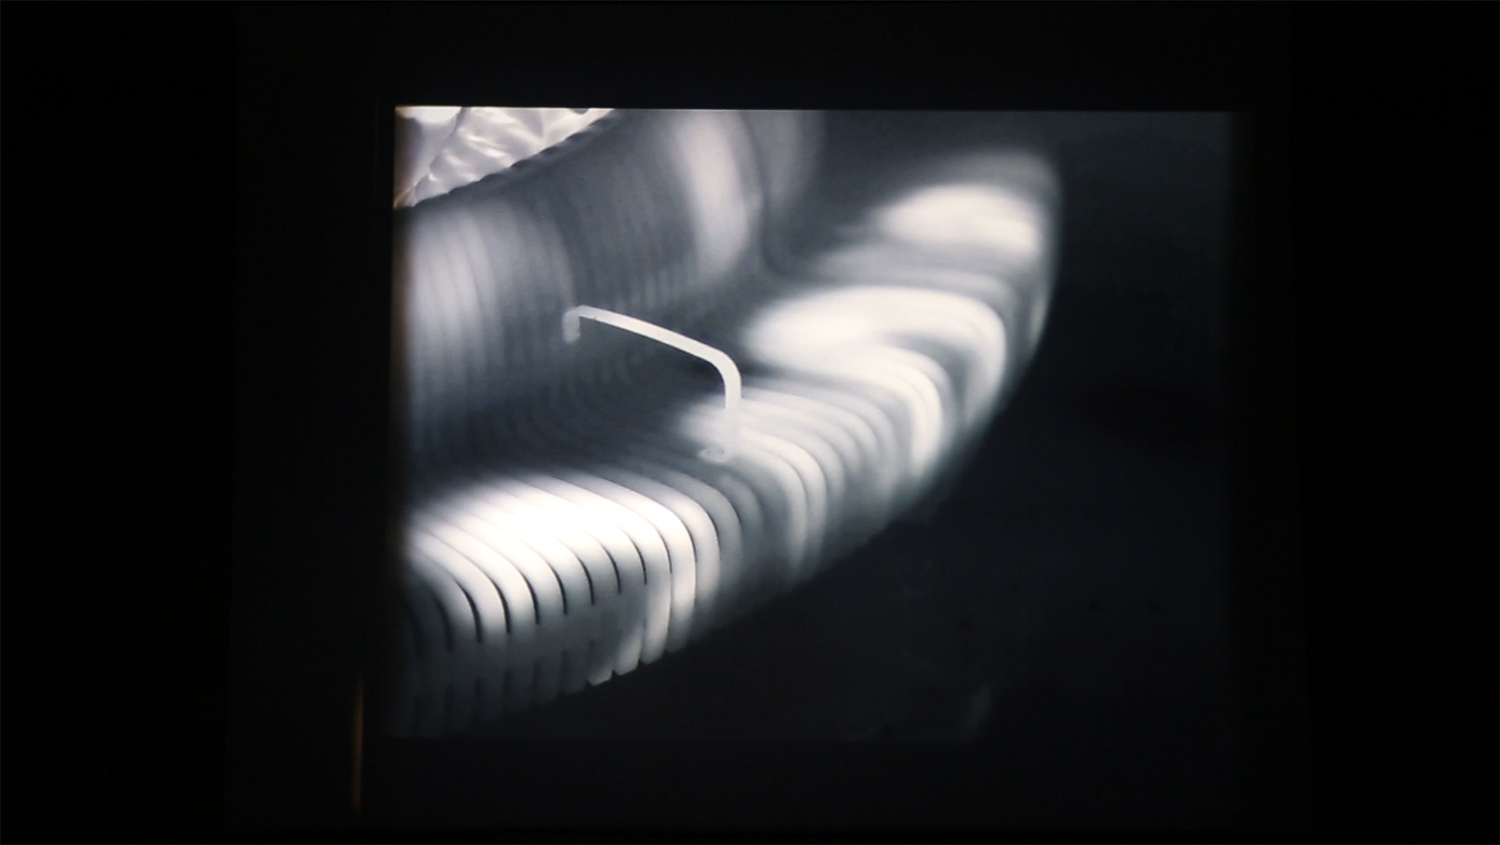 Interbeing,  Kalbjerga Film Festival, 35 mm film on carbon arc projector, 10 min 40 sec, 2018